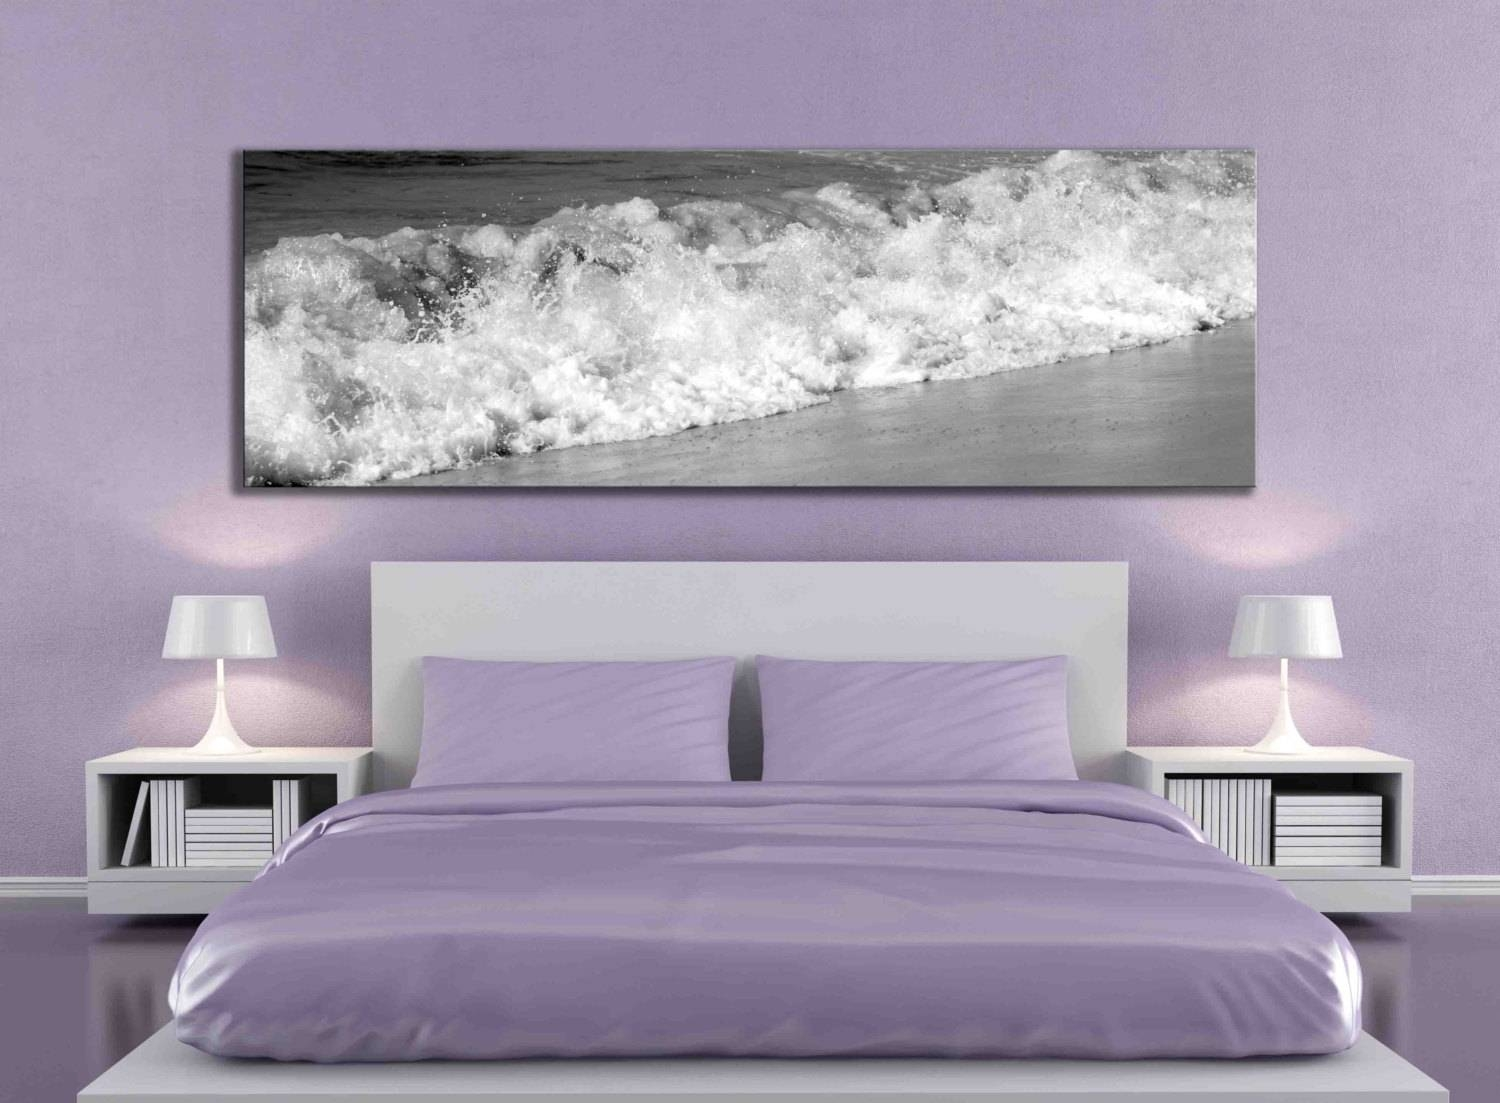 Big Panoramic Black And White Water Beach Ocean Artwork Sand Pertaining To Current Over The Bed Wall Art (View 11 of 20)